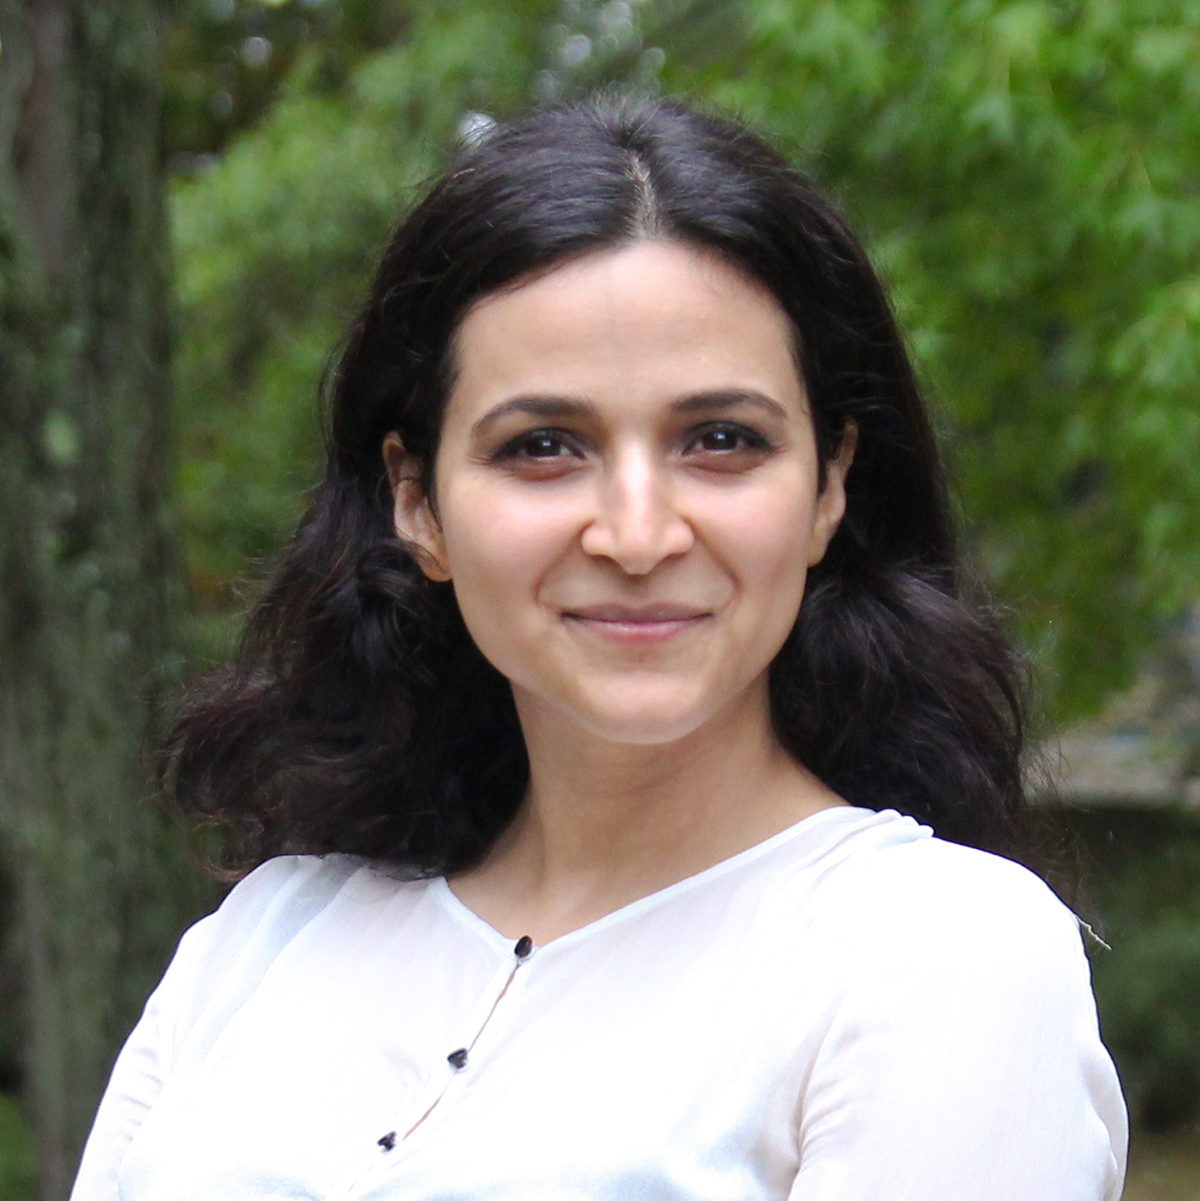 Stuart Podcast Episode 3: Building Economies: Advice for the Unemployed, the President of Oman, and Stuart Girls with Priyanka Sinha '00, Policy Maker with The World Bank